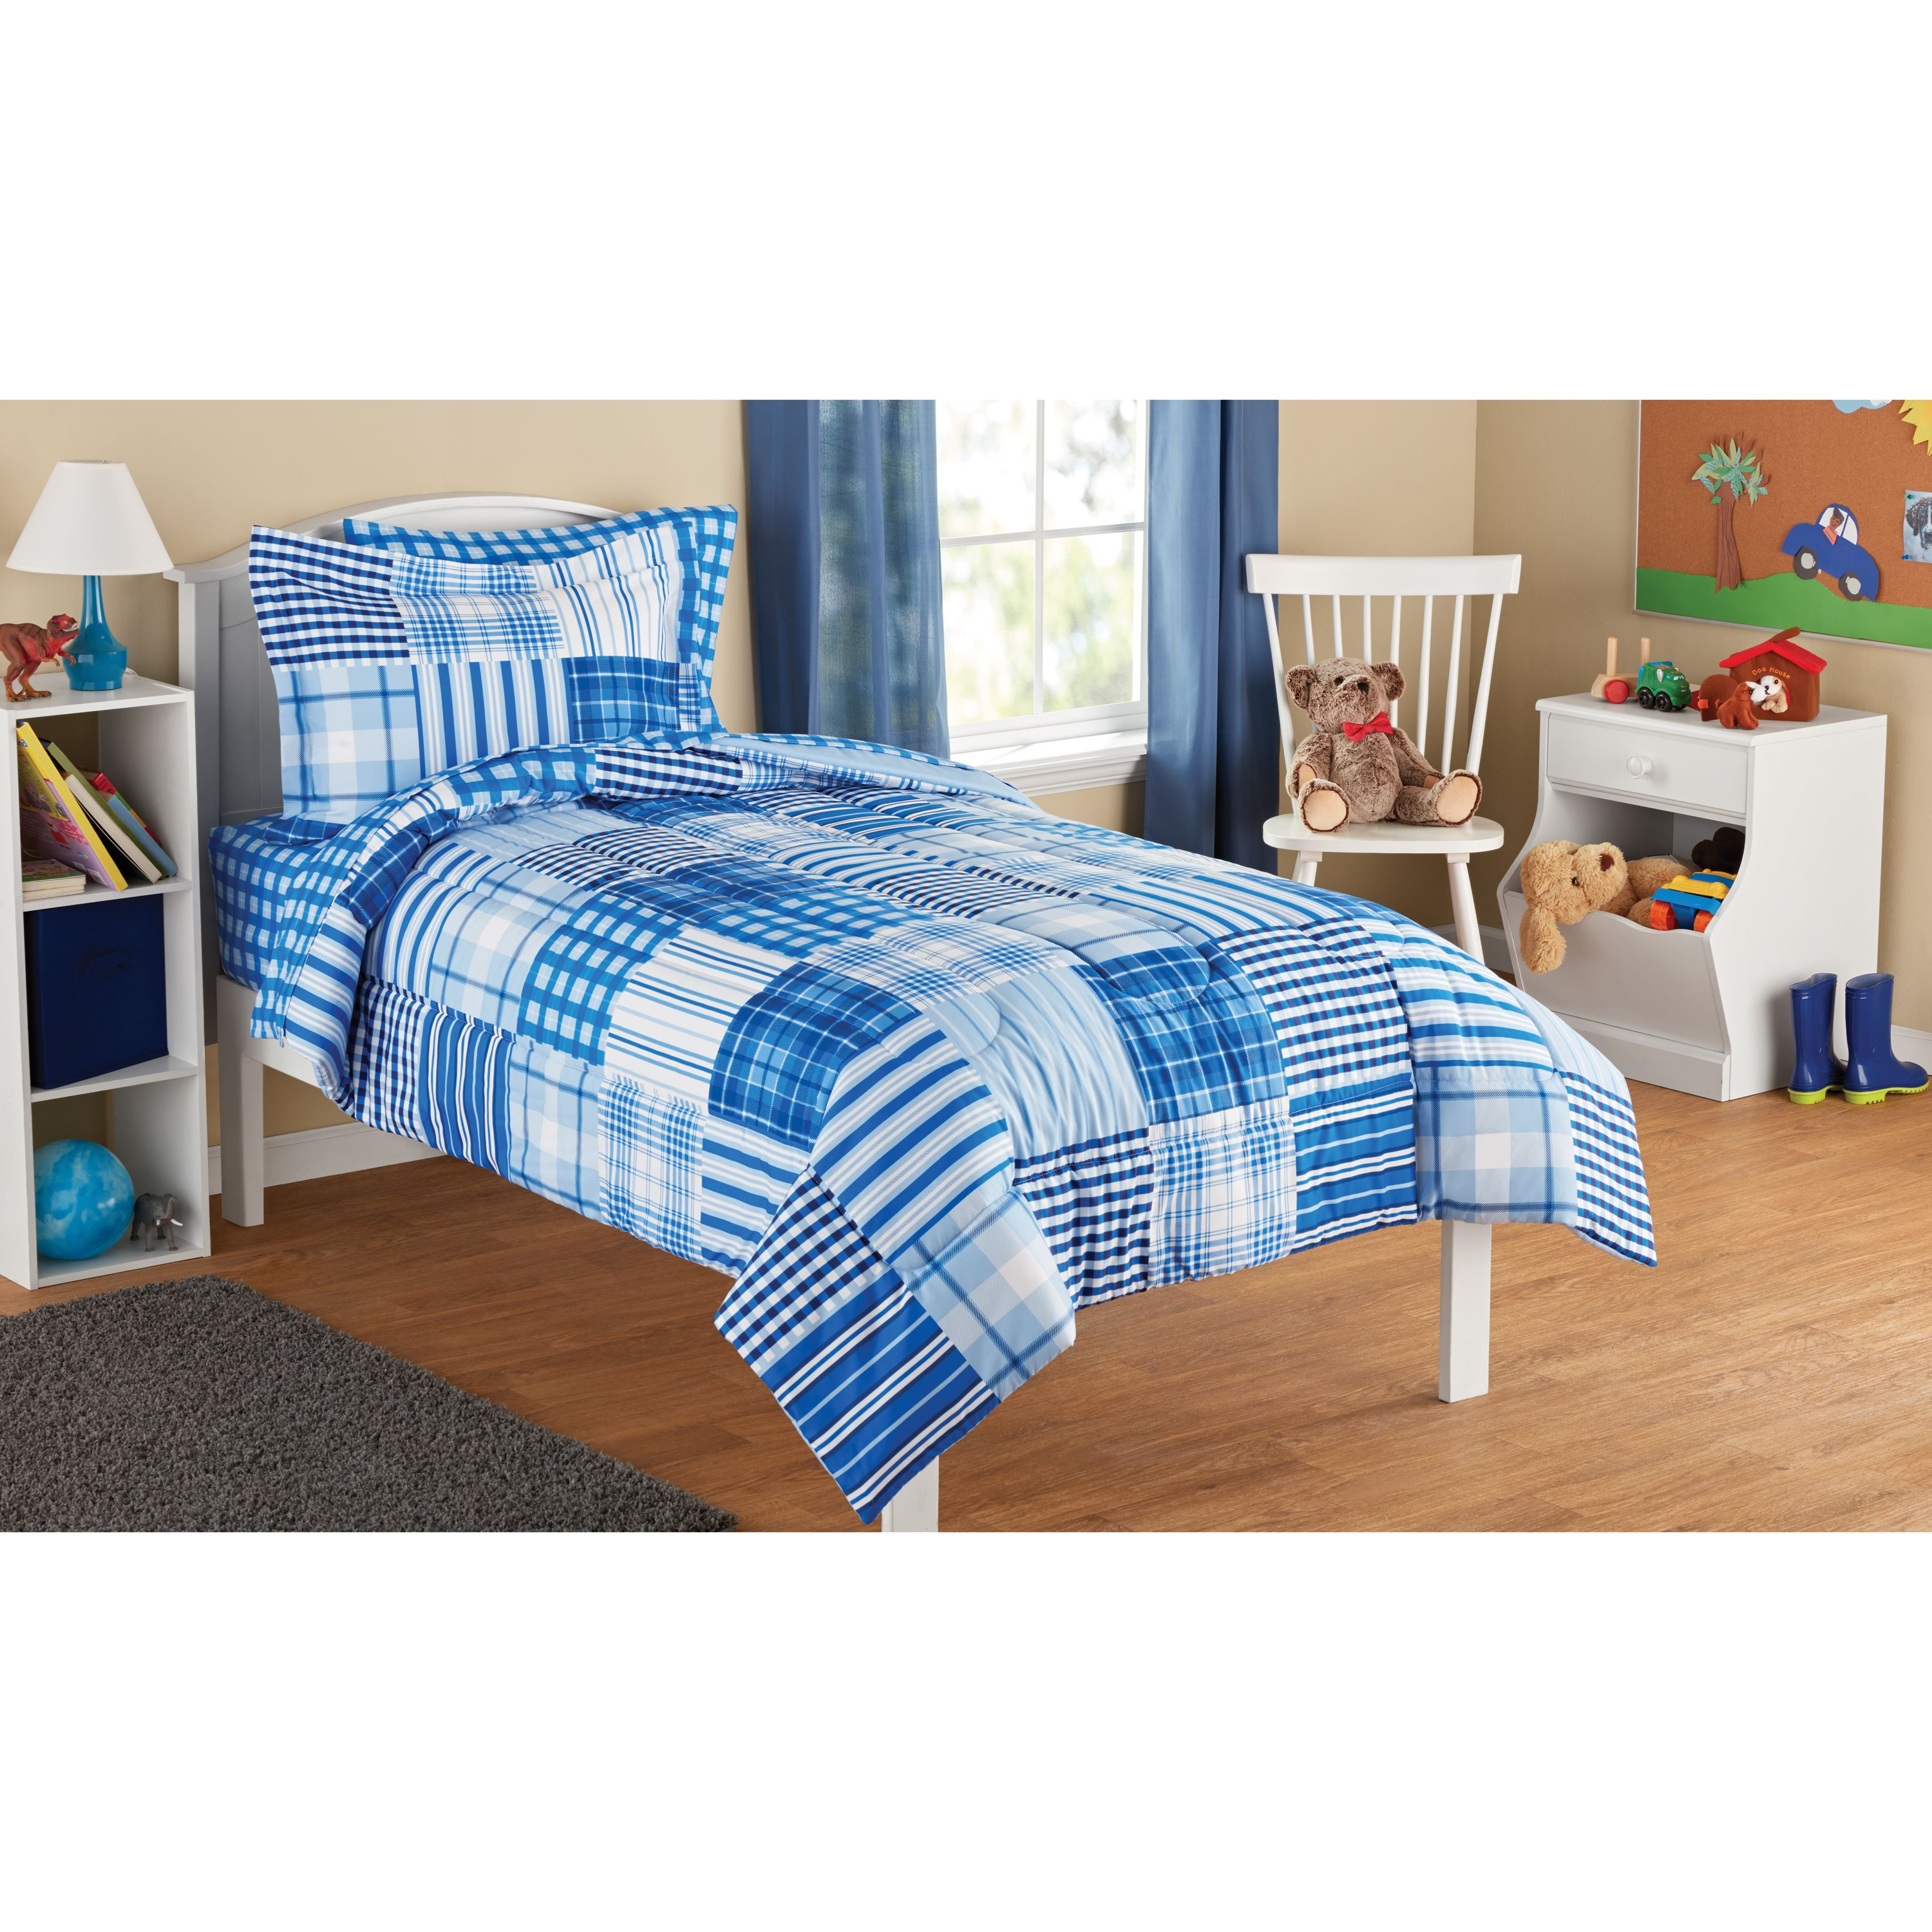 Mainstays Kids Plaid Patch Bed in a Bag